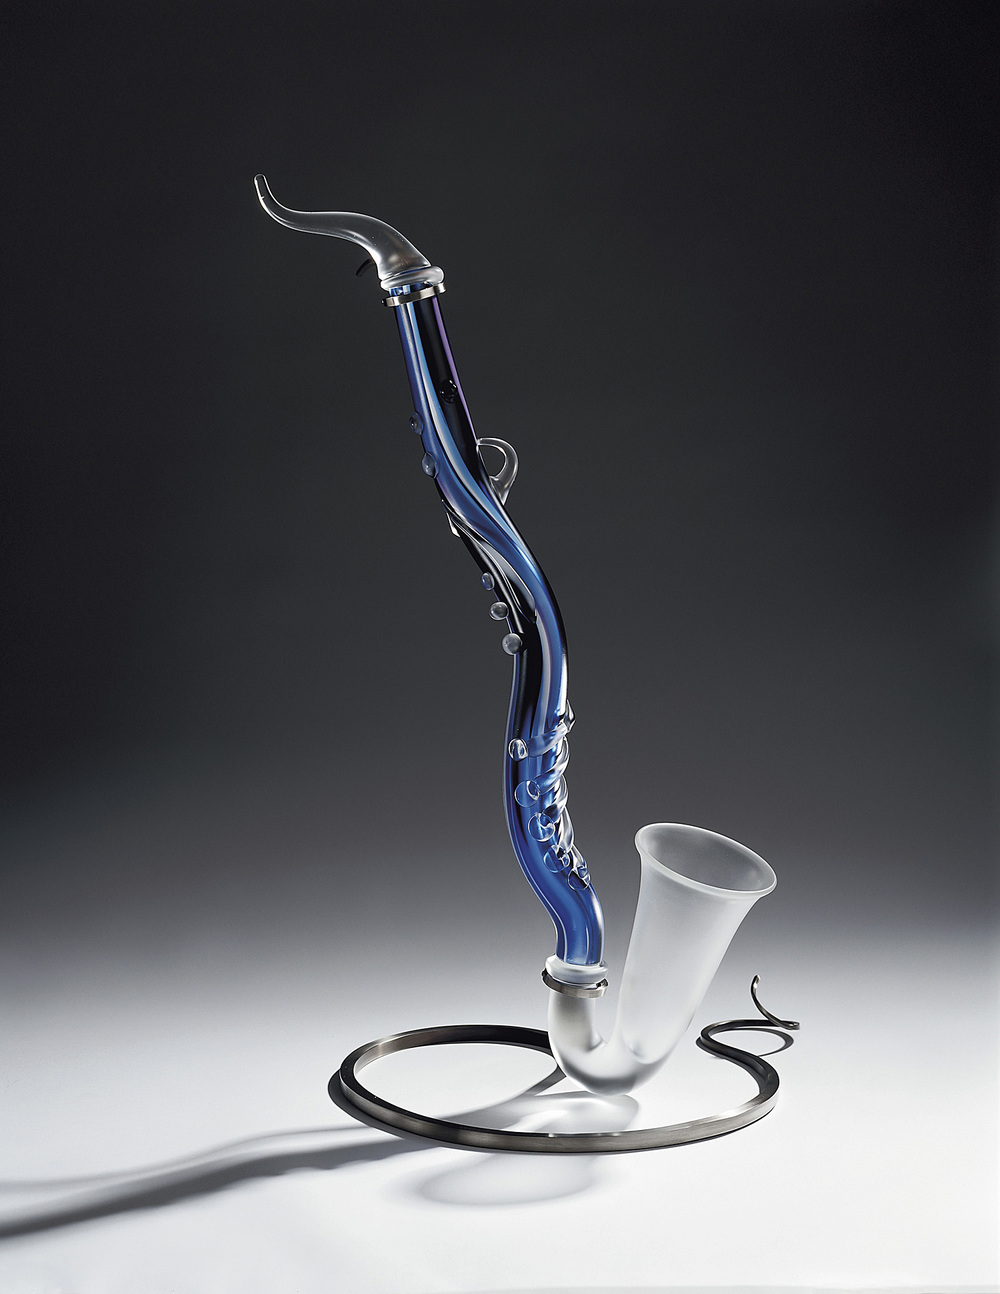 Featherfall   2001. Blown glass, glass details, nickel-plated bronze. 33 x 20""